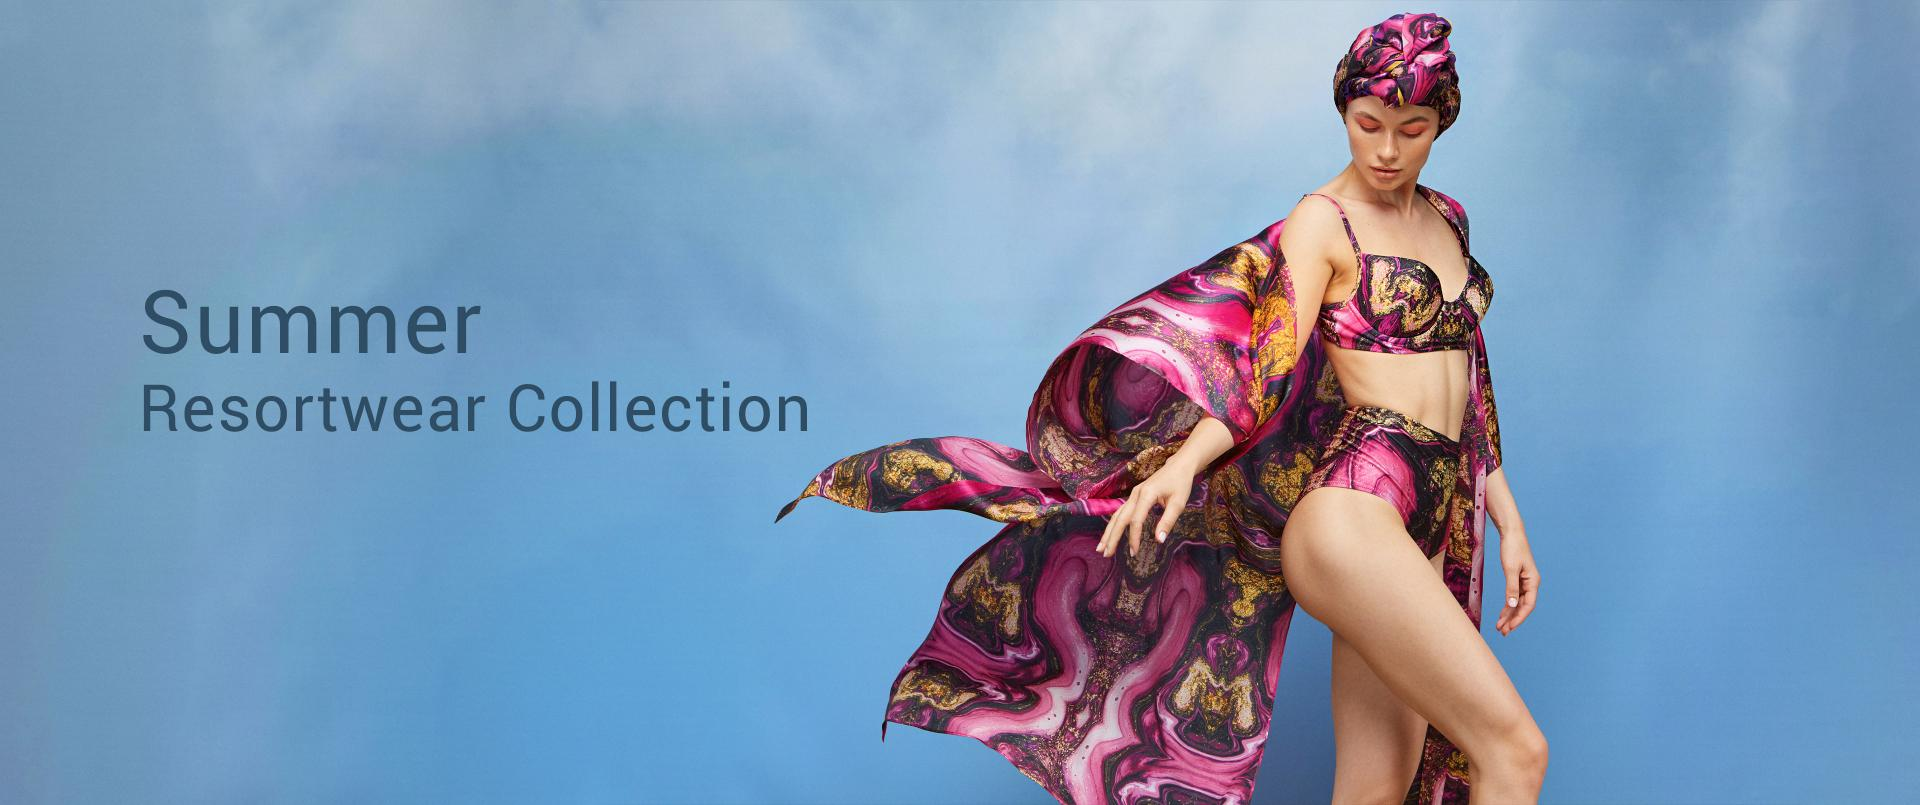 2021_Summer Collection 01